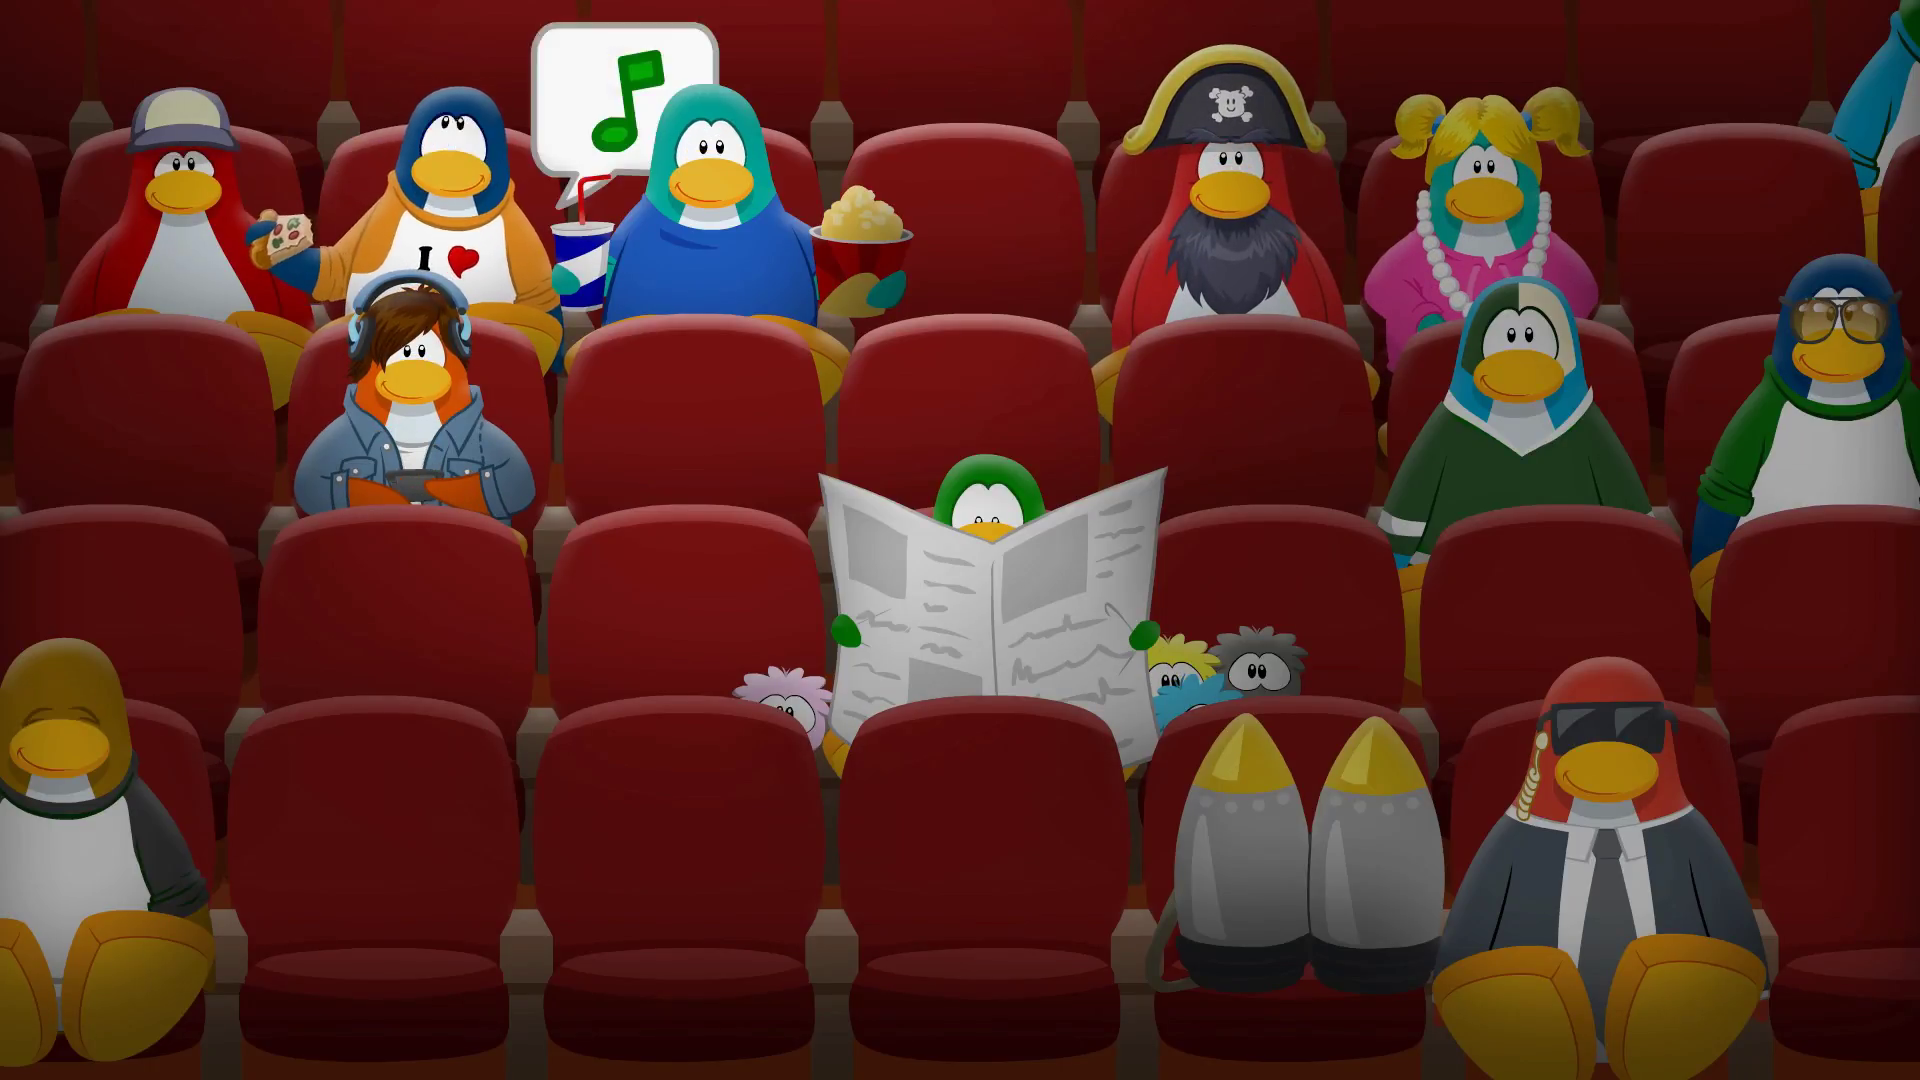 File:BestSeatintheHouse7.png